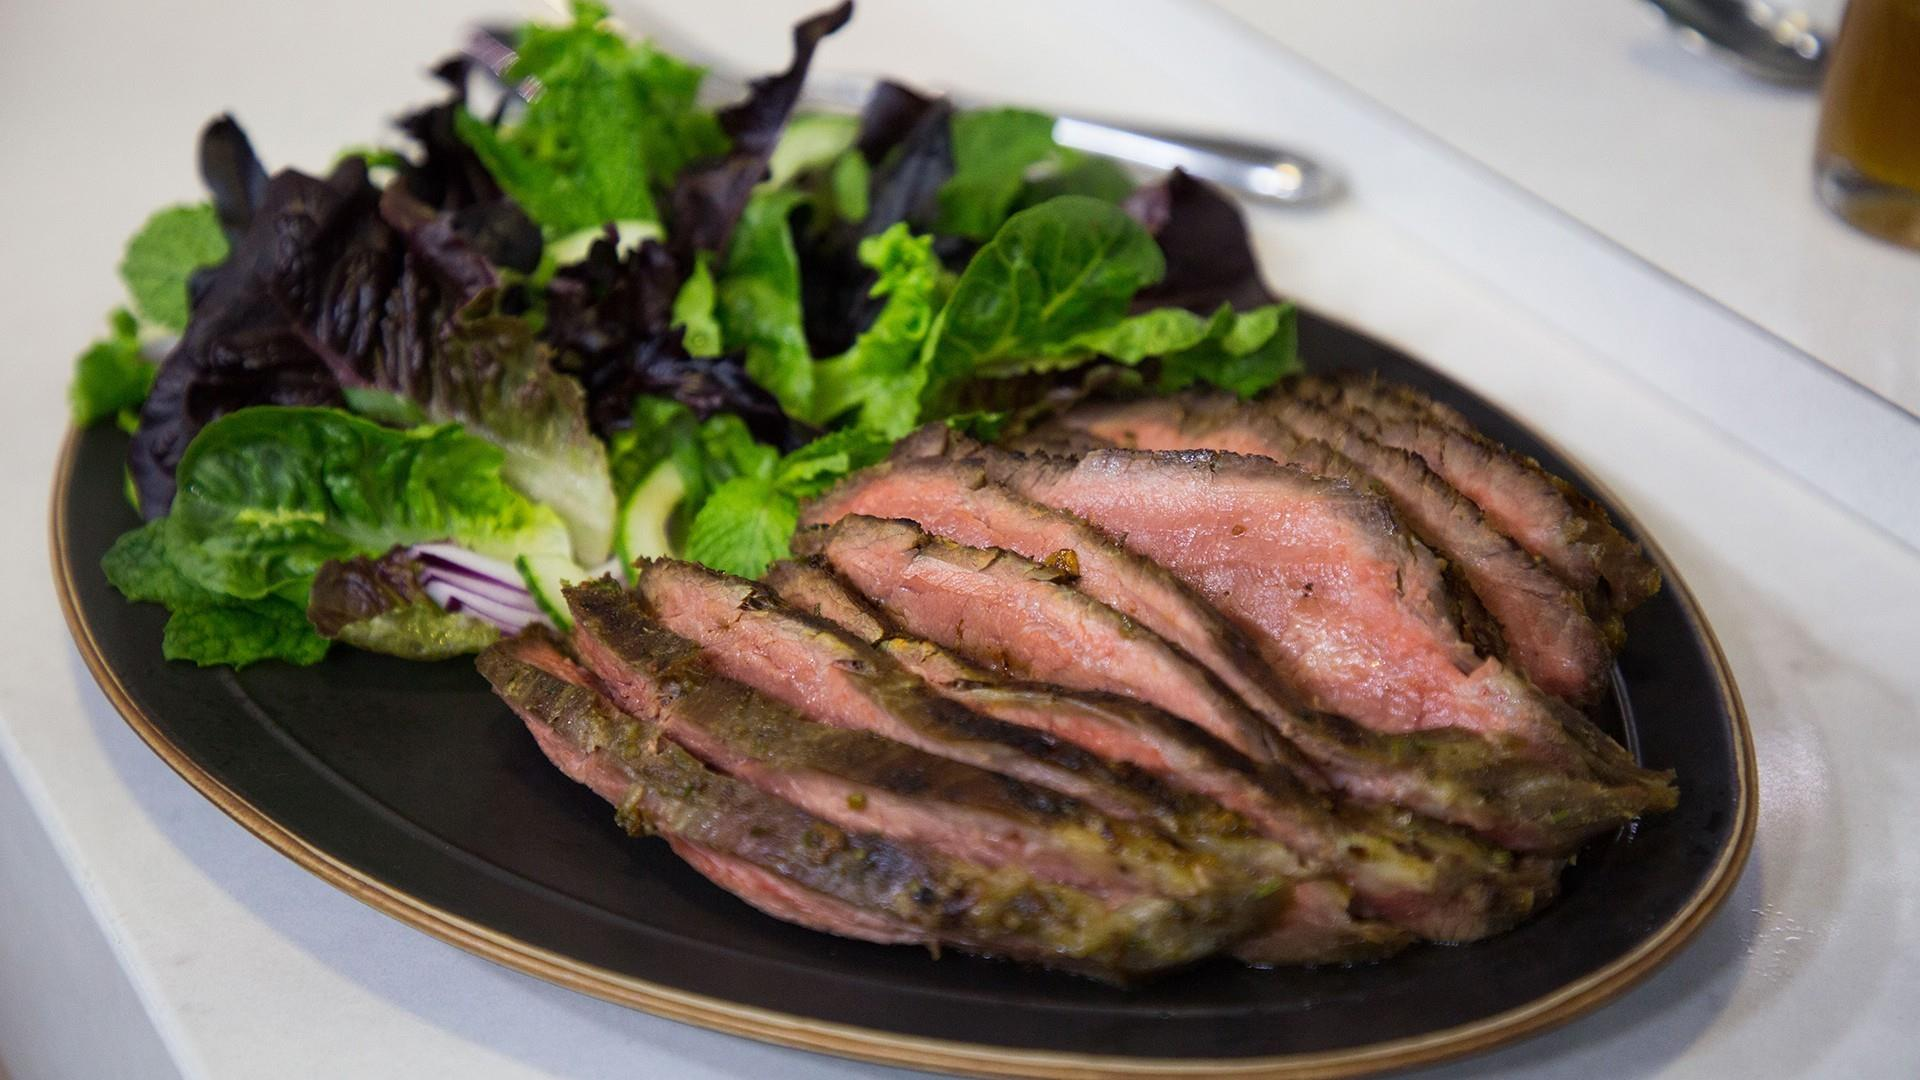 Thai beef steak salad for a hearty summer meal